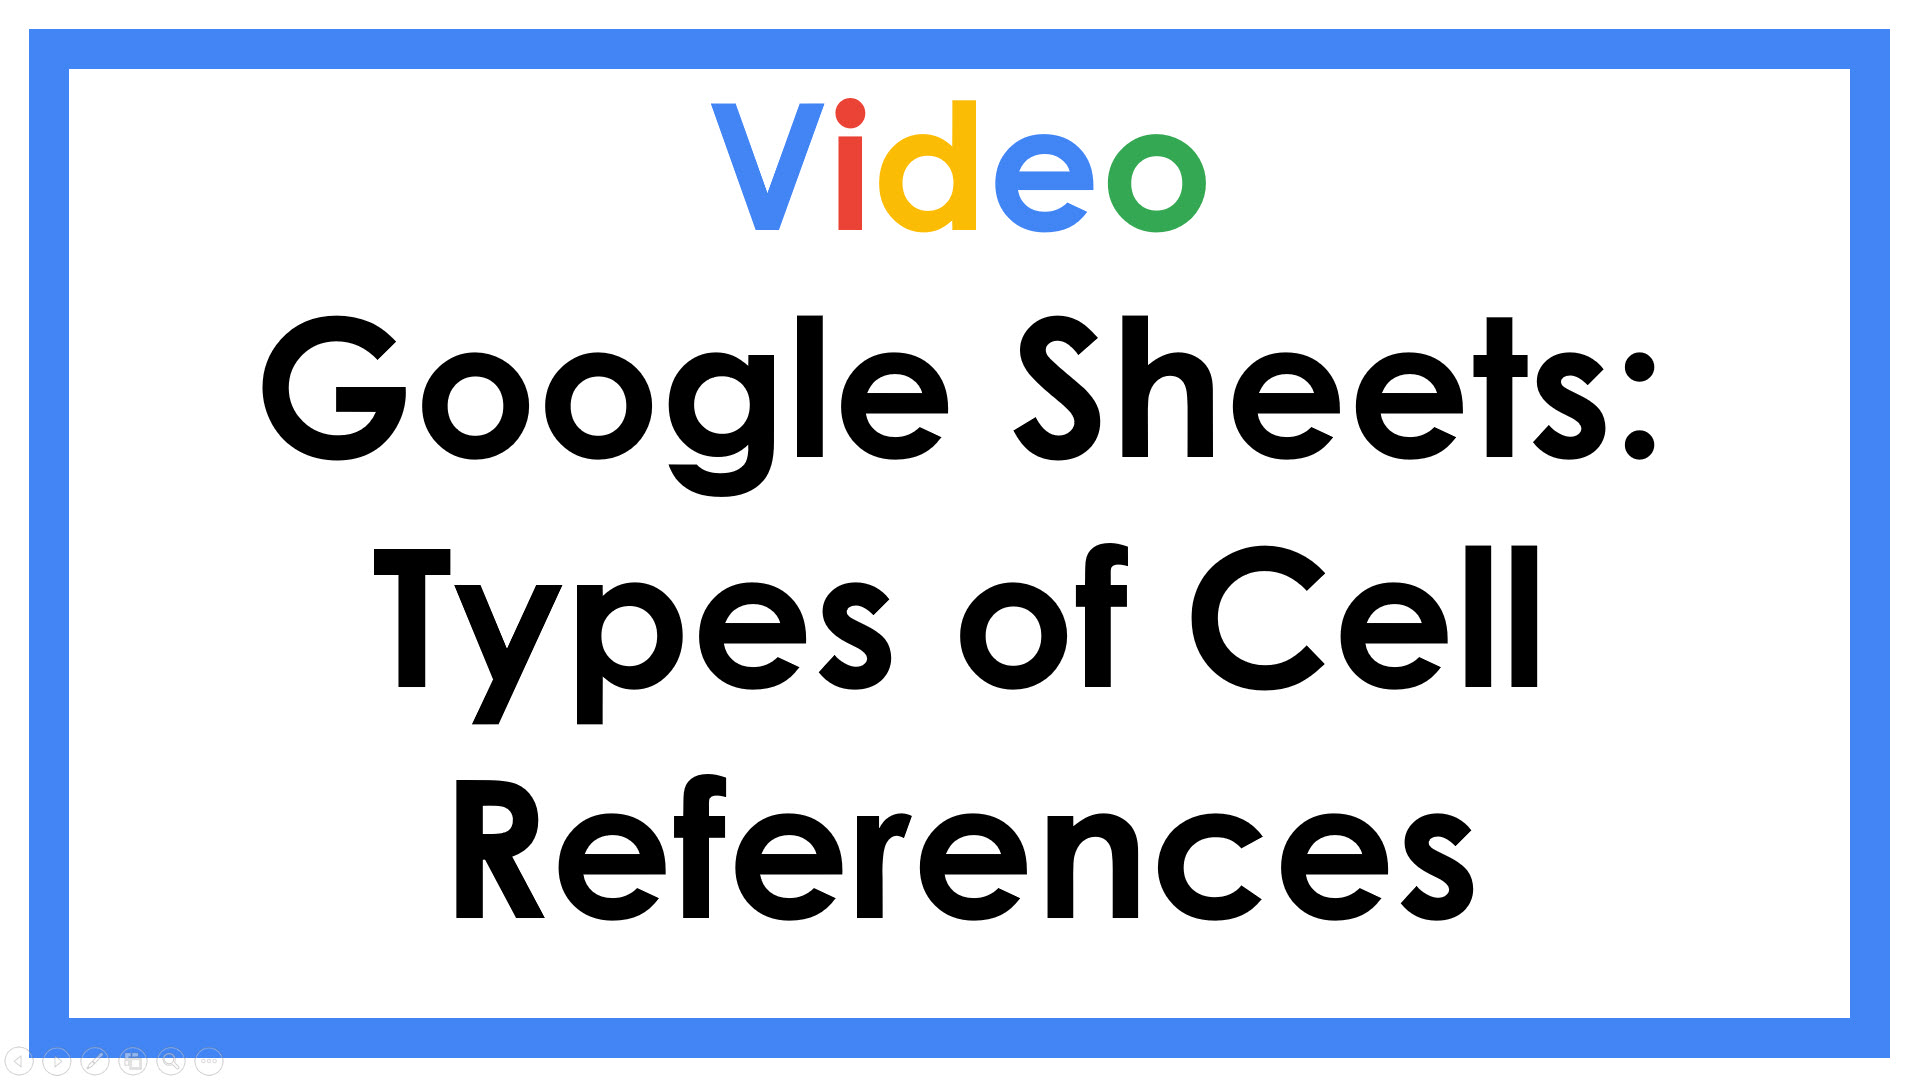 Google Sheets: Types of Cell References